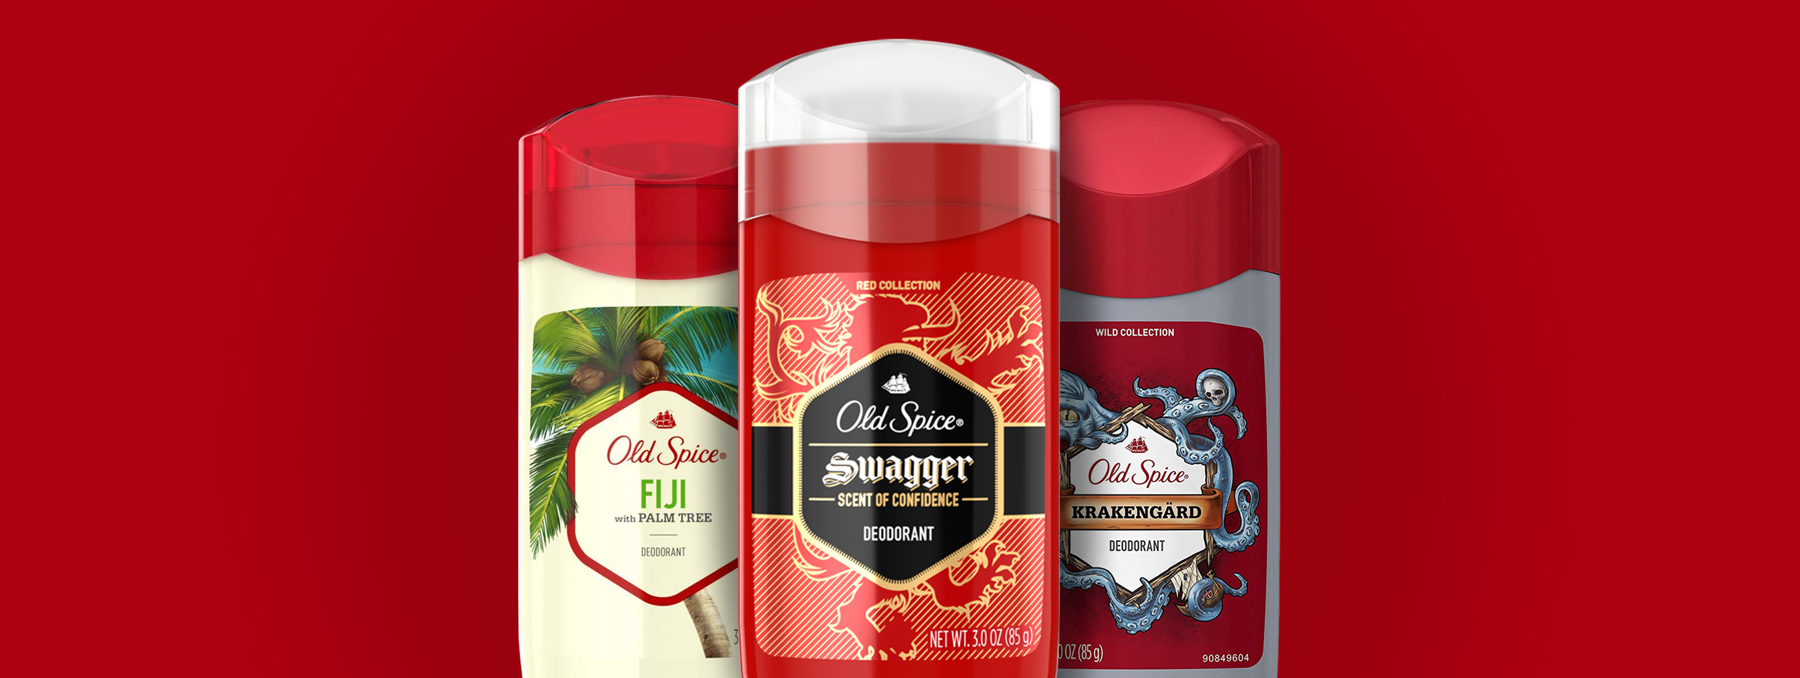 Top Aluminum-Free Deodorants for Men from Old Spice